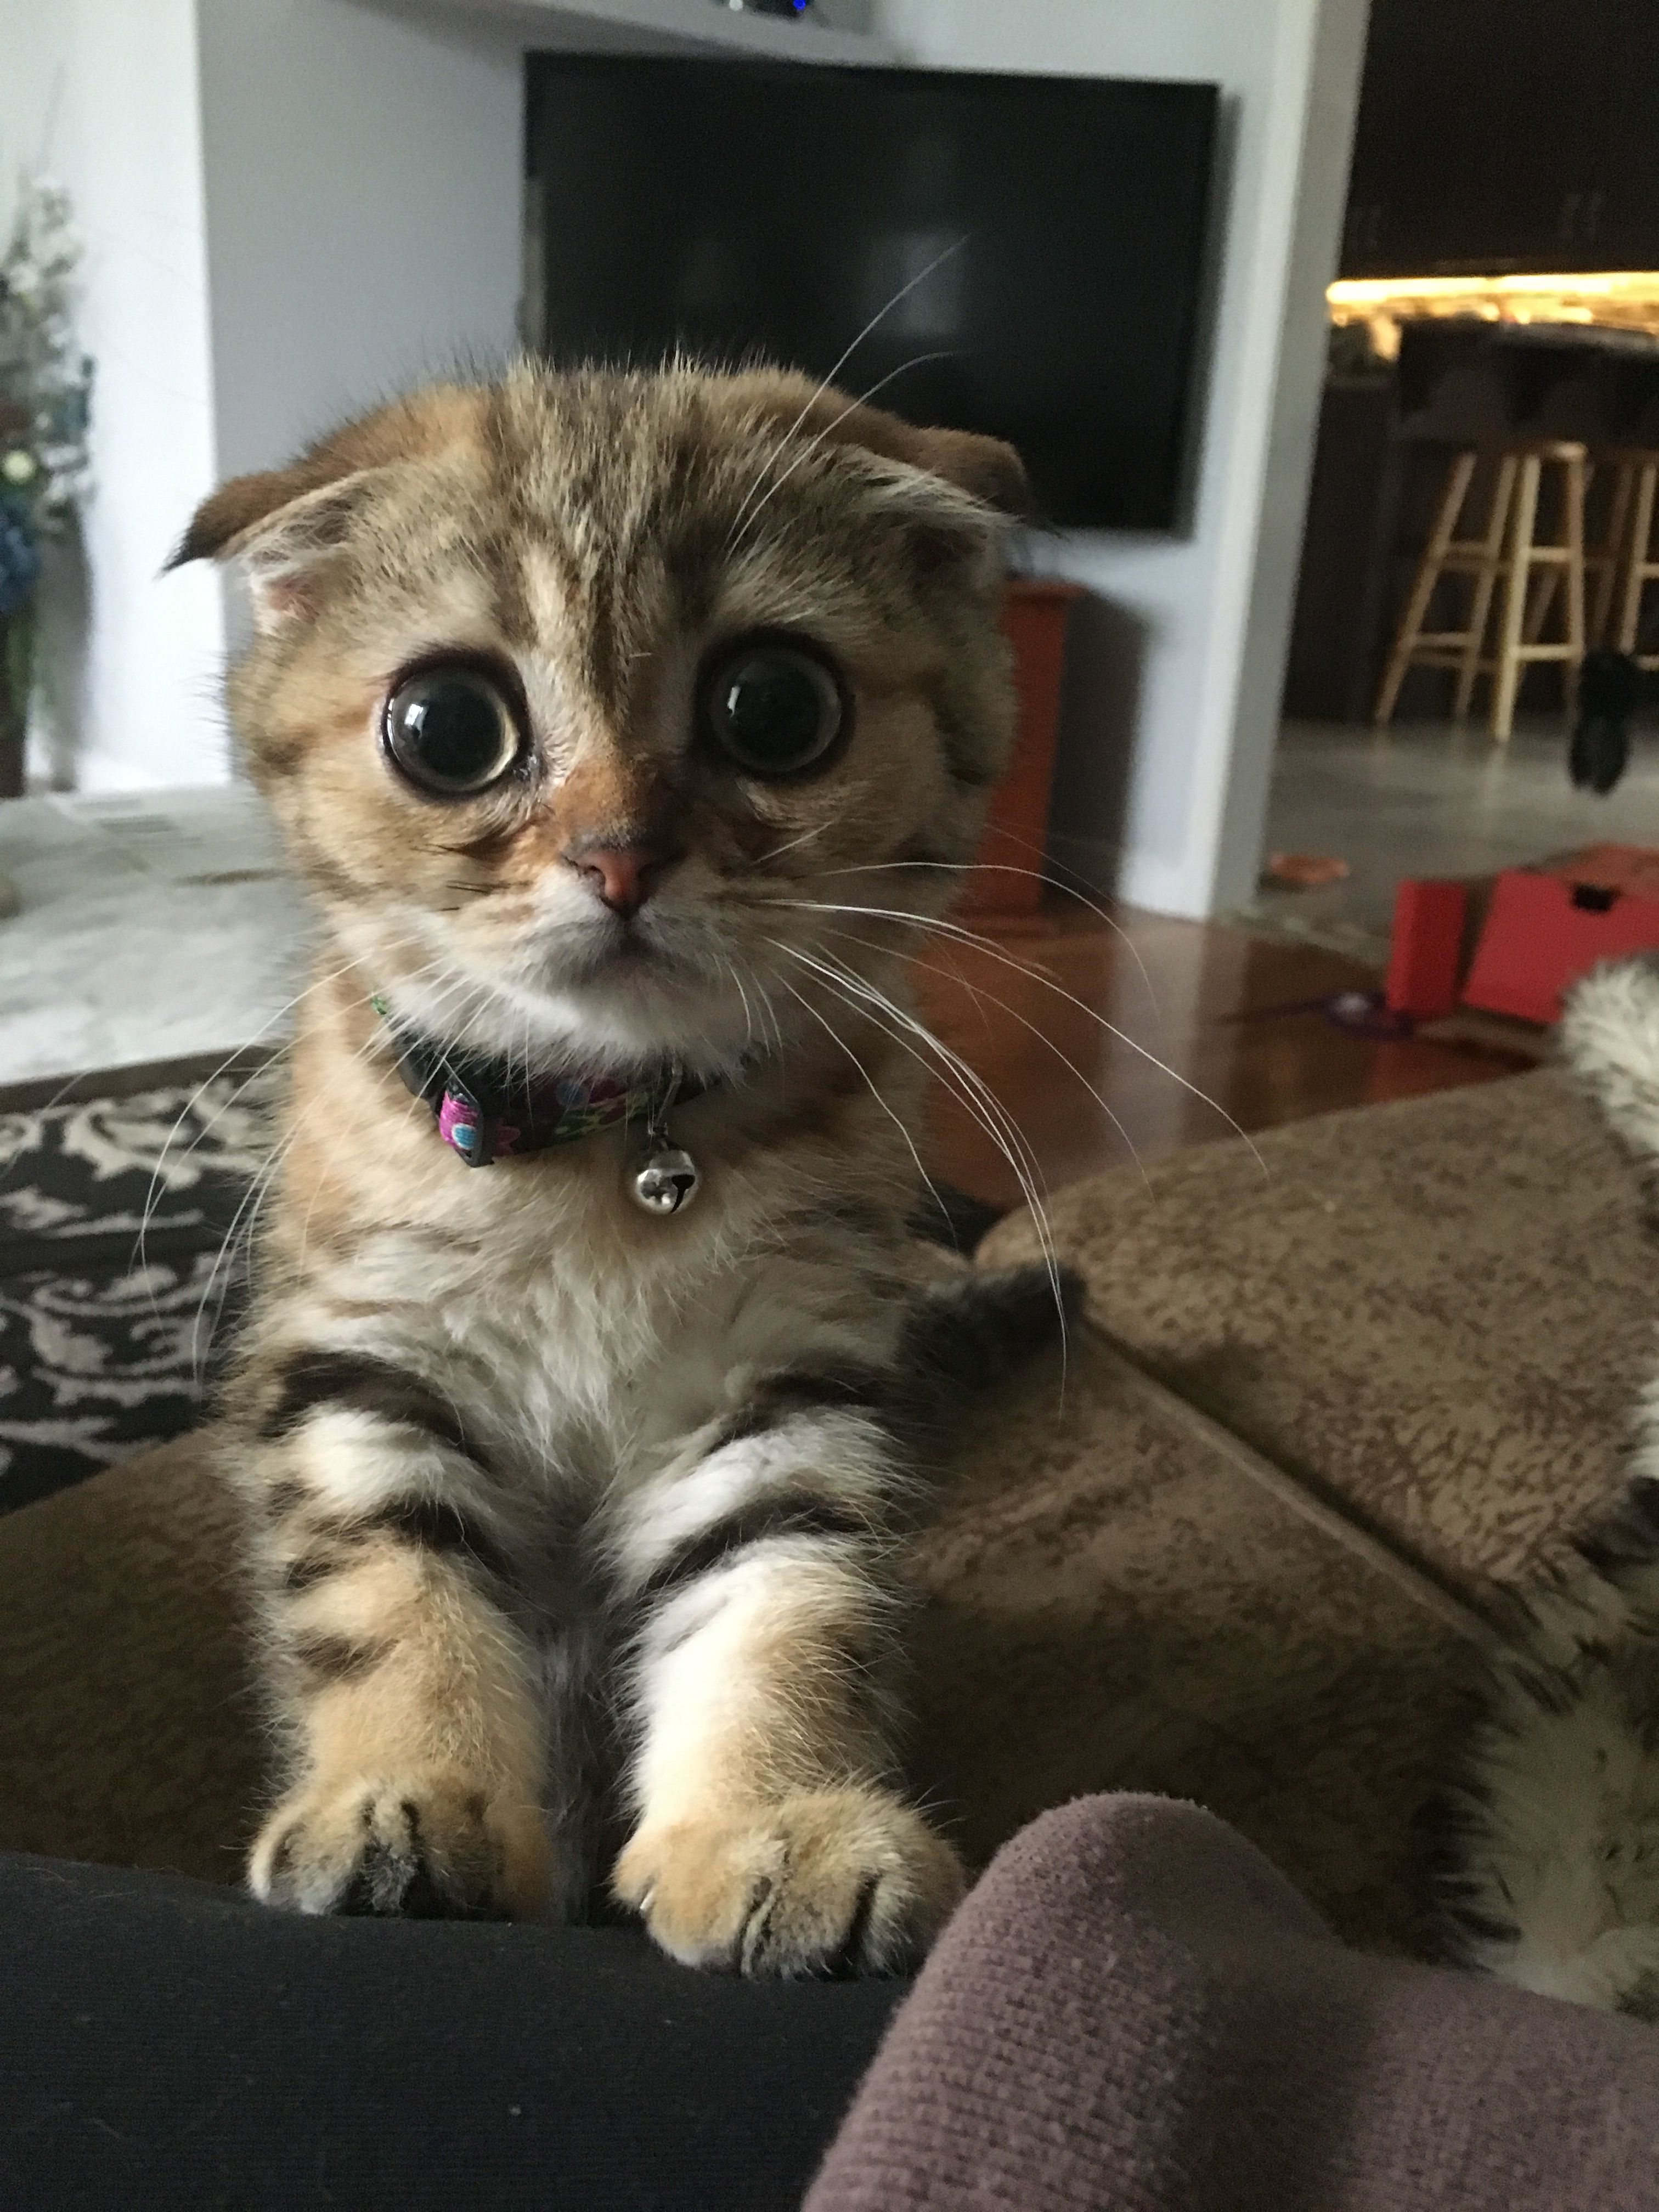 Always Guilty Helpfulharrie Source Coyotemange See: Scottish Folds Always Look Guilty Or Sorry For Something